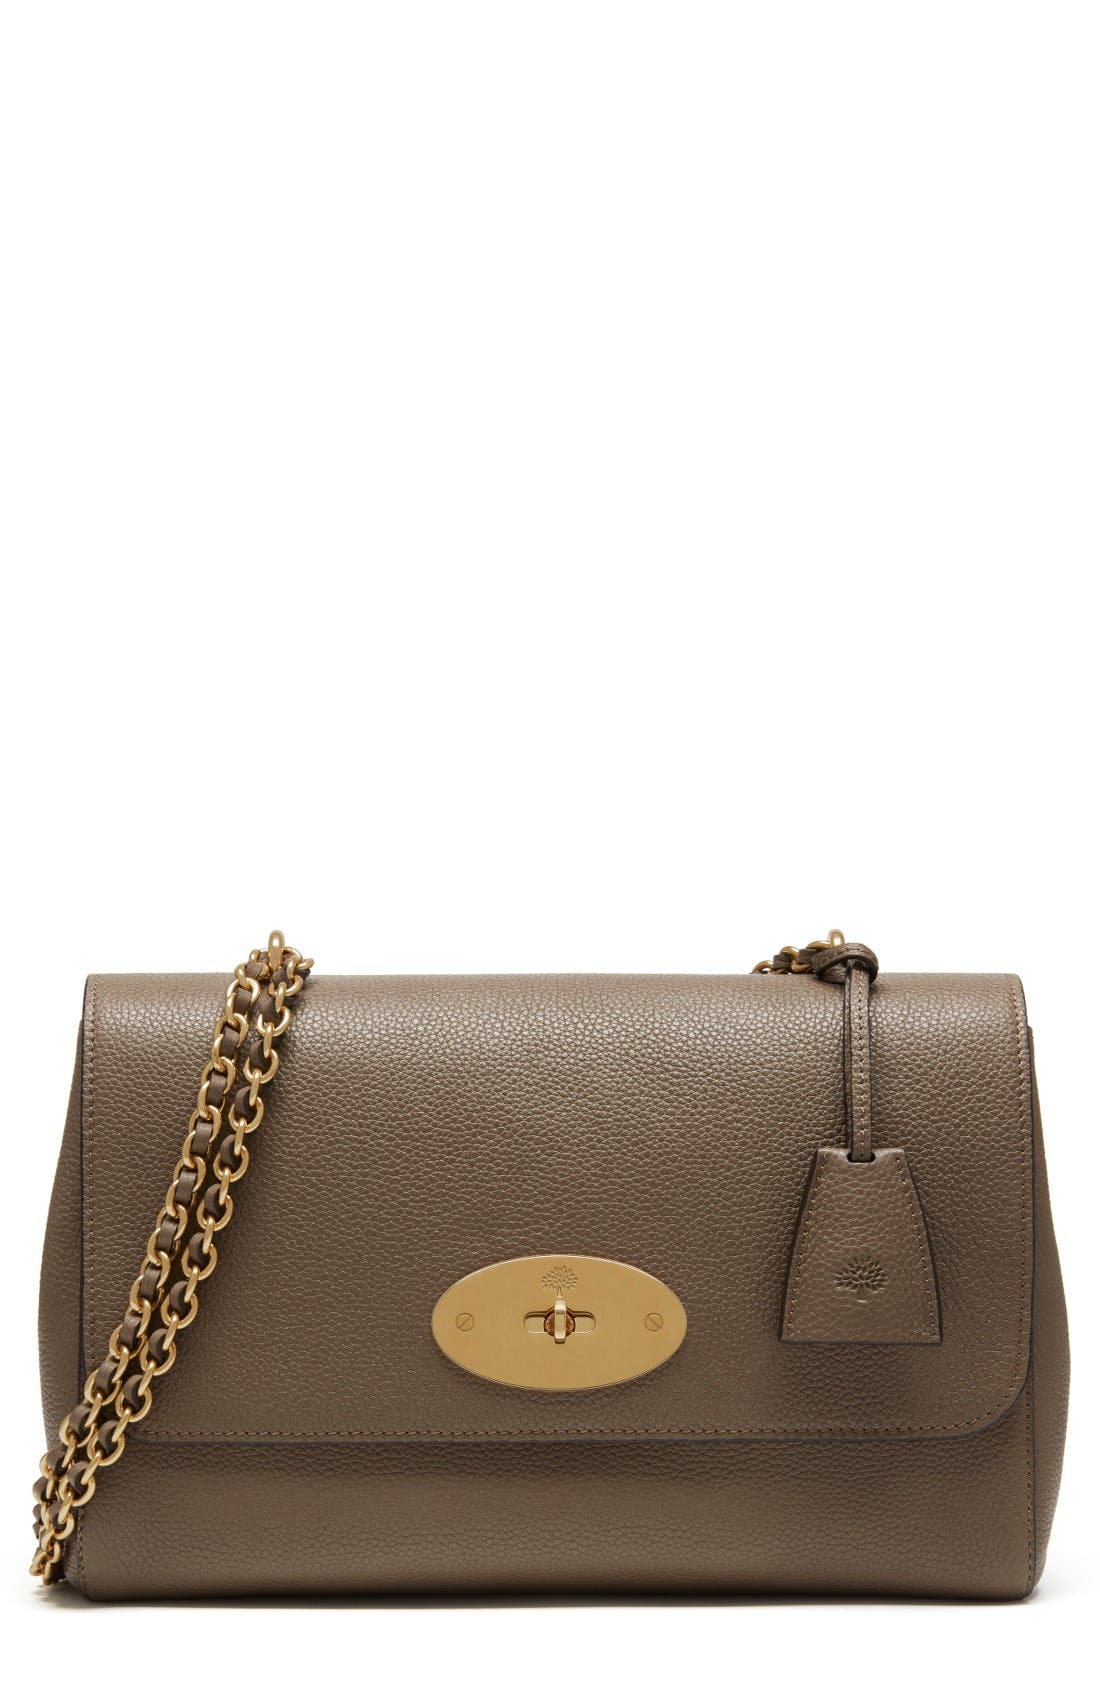 Alternate Image 1 Selected - Mulberry Medium Lily Convertible Leather Crossbody Clutch